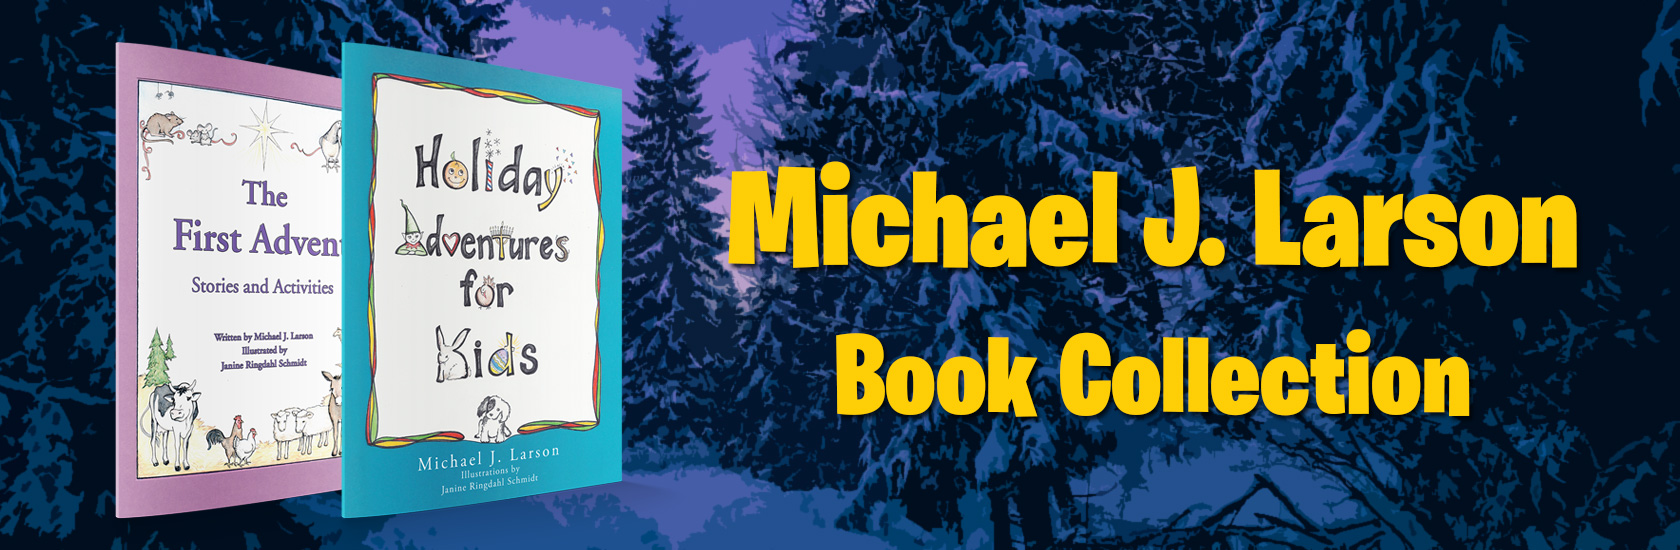 Michael J. Larson Book Collection